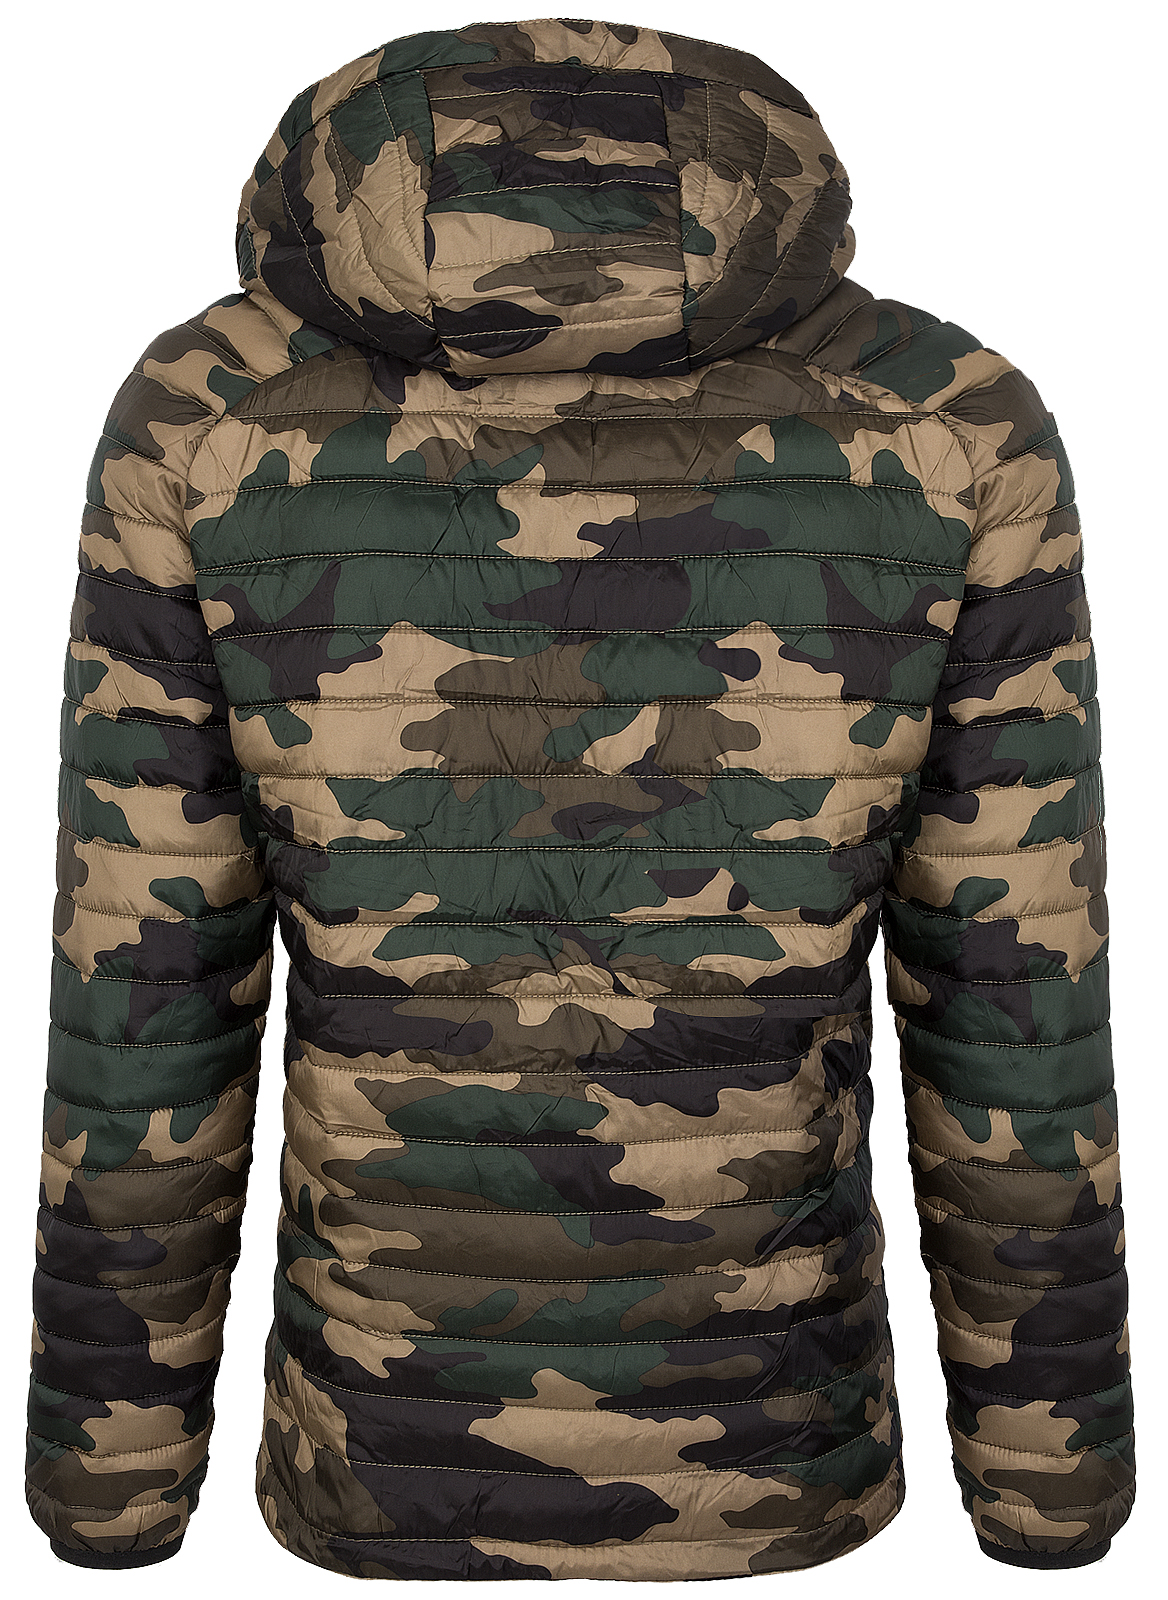 herren army jacke bergangsjacke stepp jacke camouflage herrenjacke h 137 m 3xl ebay. Black Bedroom Furniture Sets. Home Design Ideas